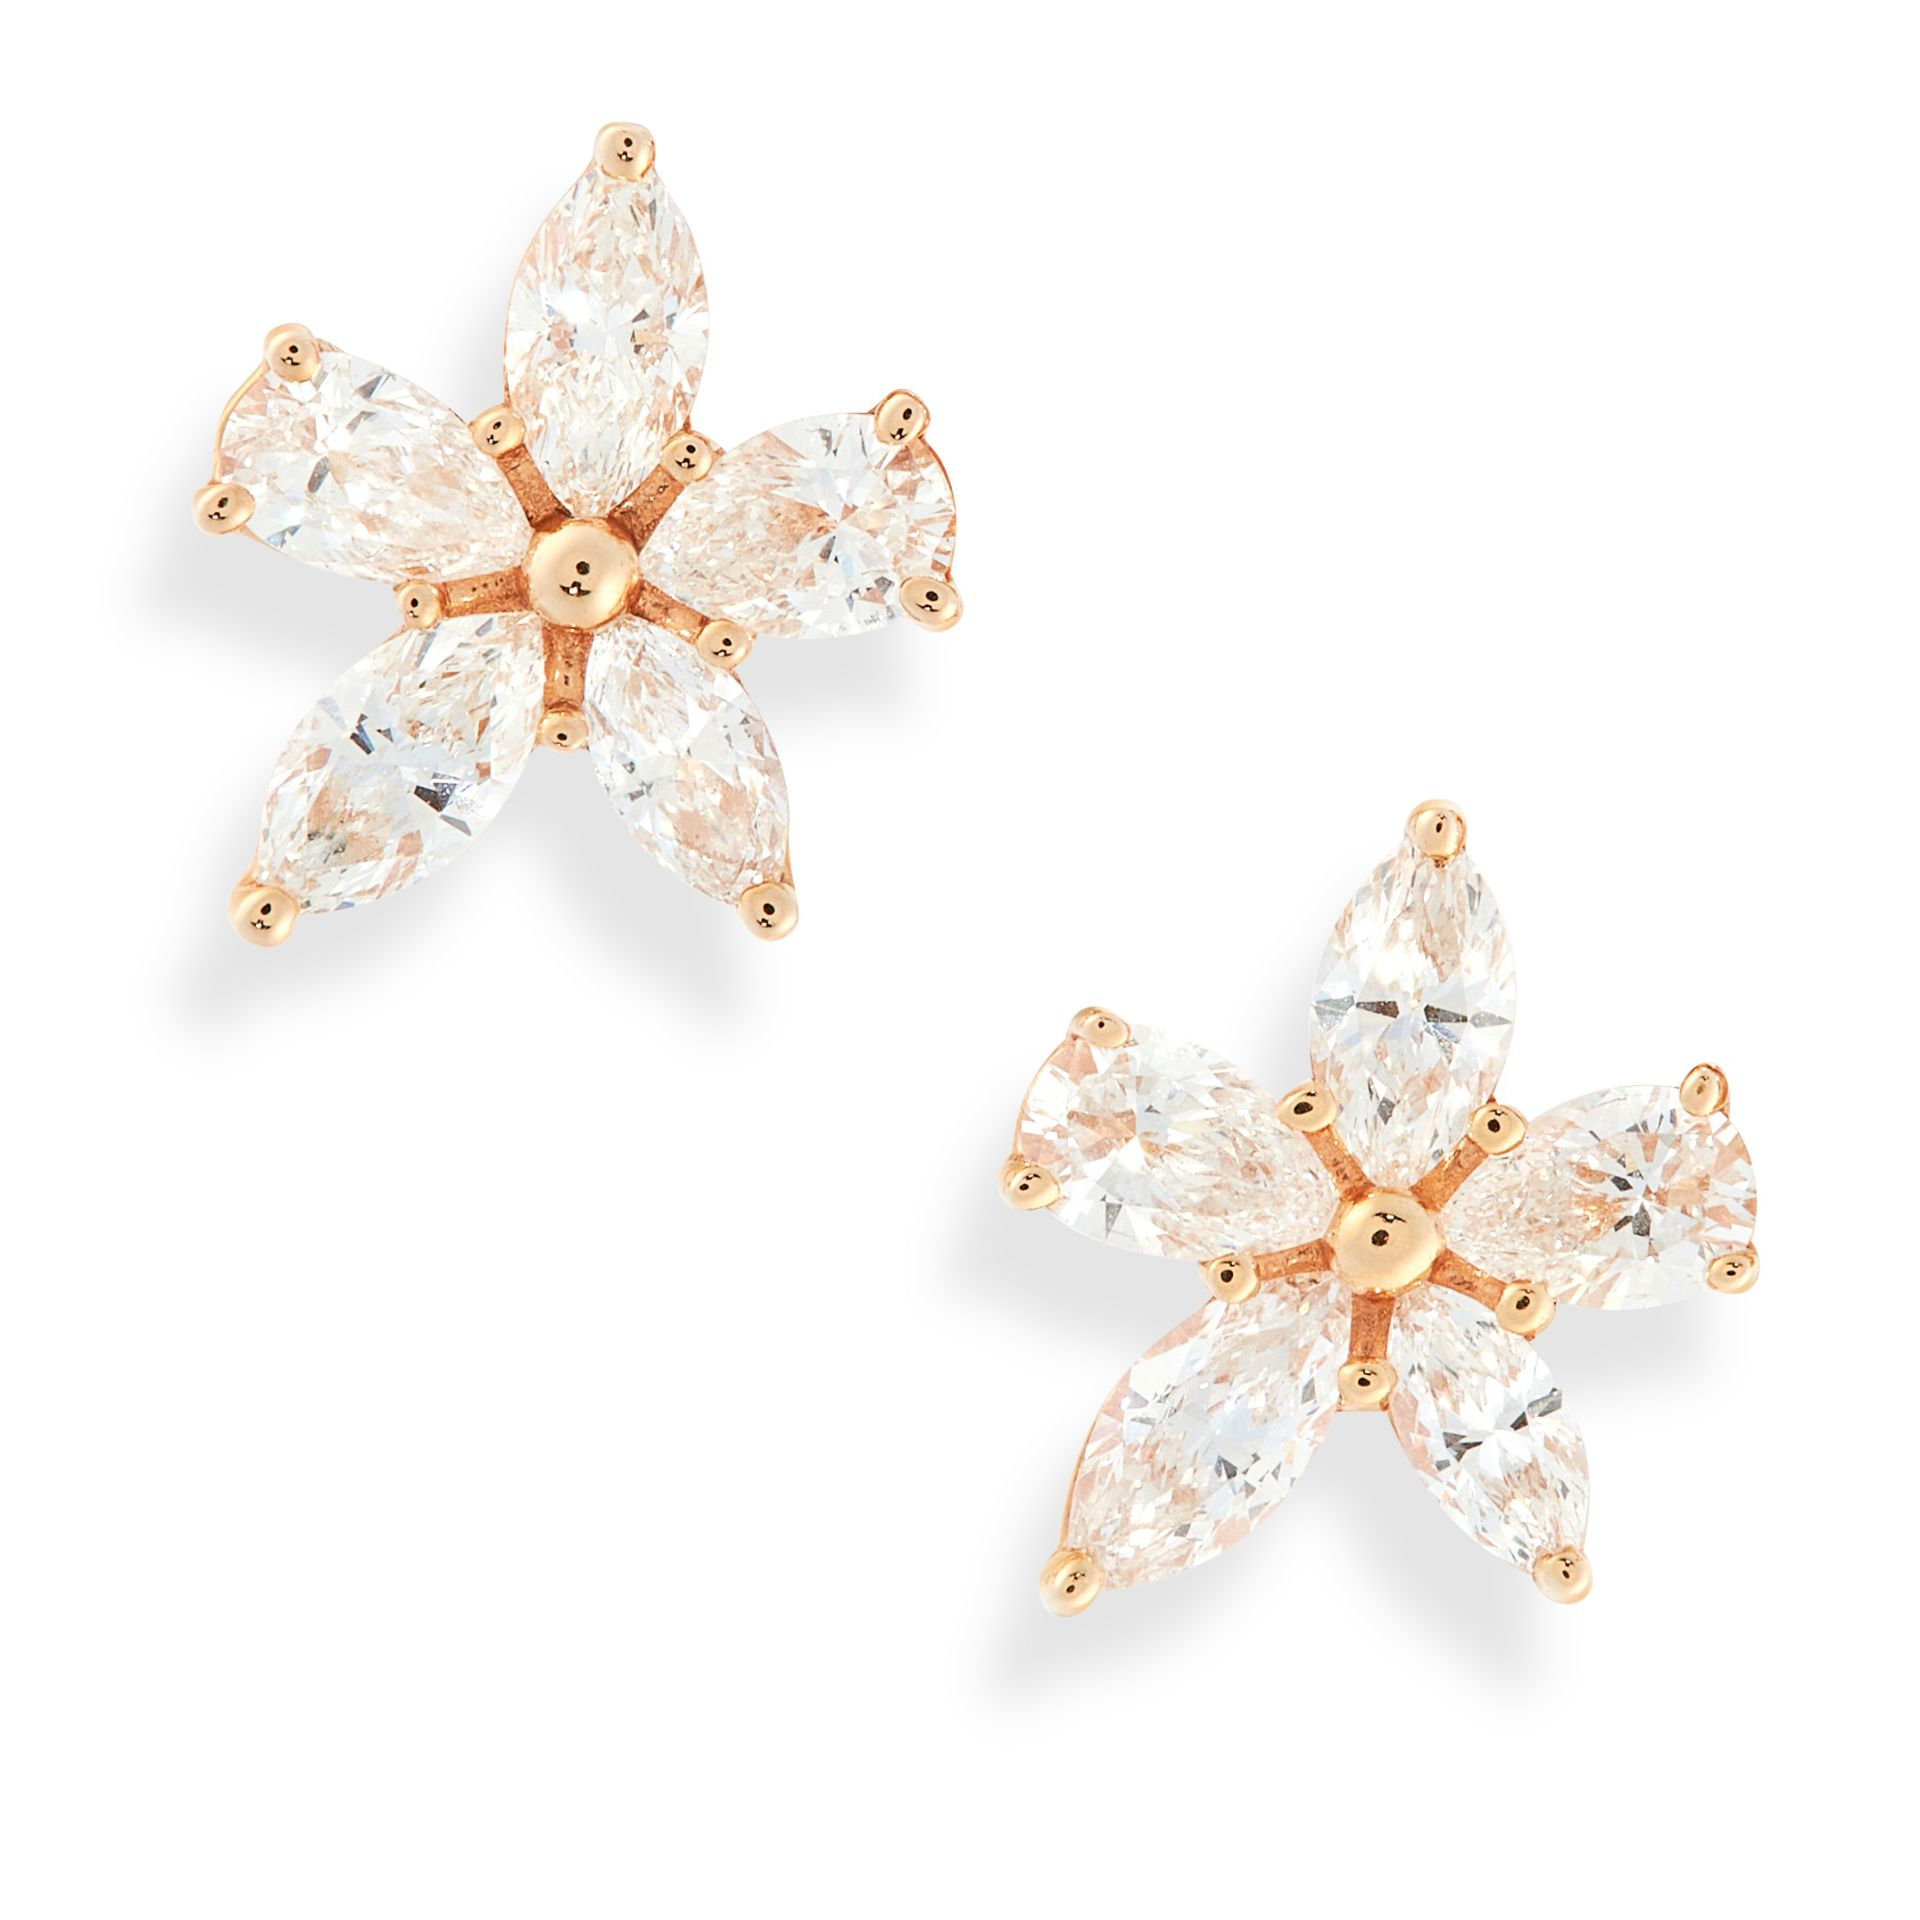 A PAIR OF VICTORIA DIAMOND MIXED CLUSTER EARRINGS, TIFFANY & CO in 18ct yellow gold, set with pear